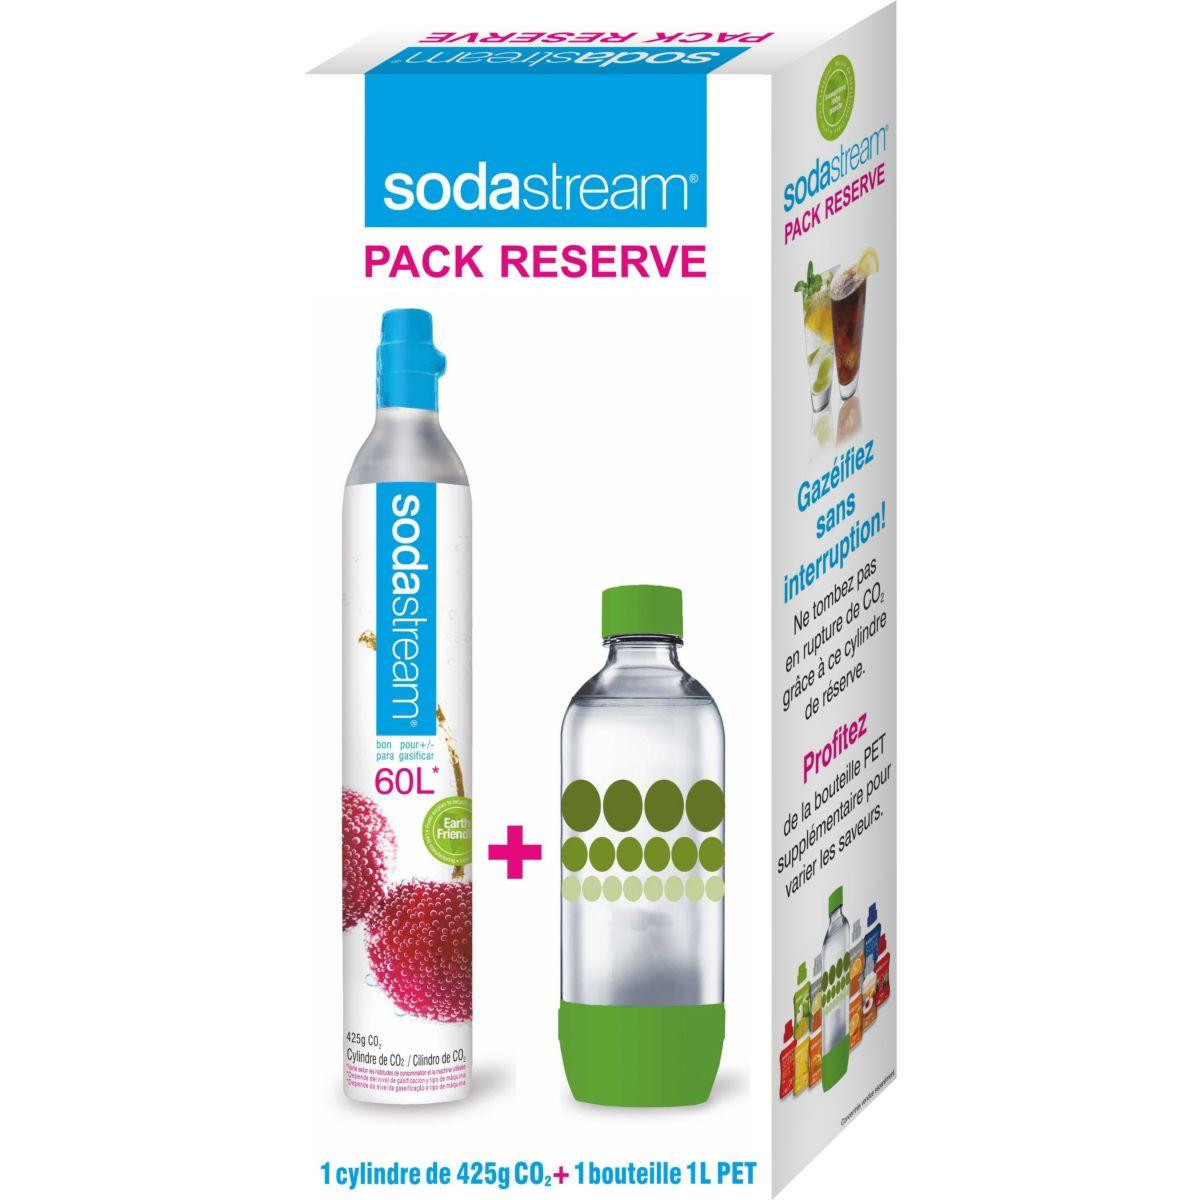 Bouteille sodastream pack cylindre c02 6 - 5% de remise : code pam5 (photo)